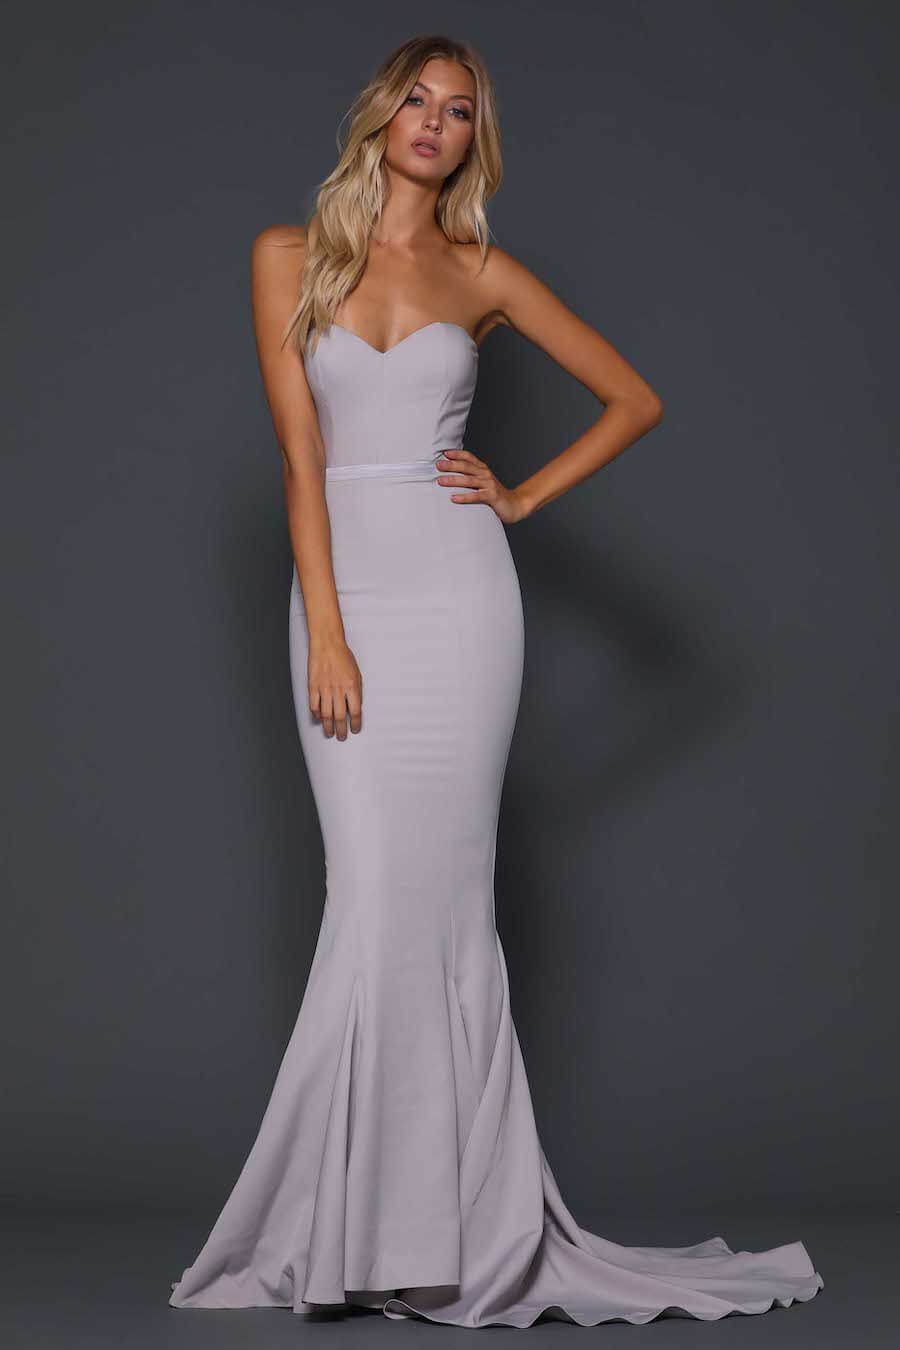 Strapless fitted floor length gown with train